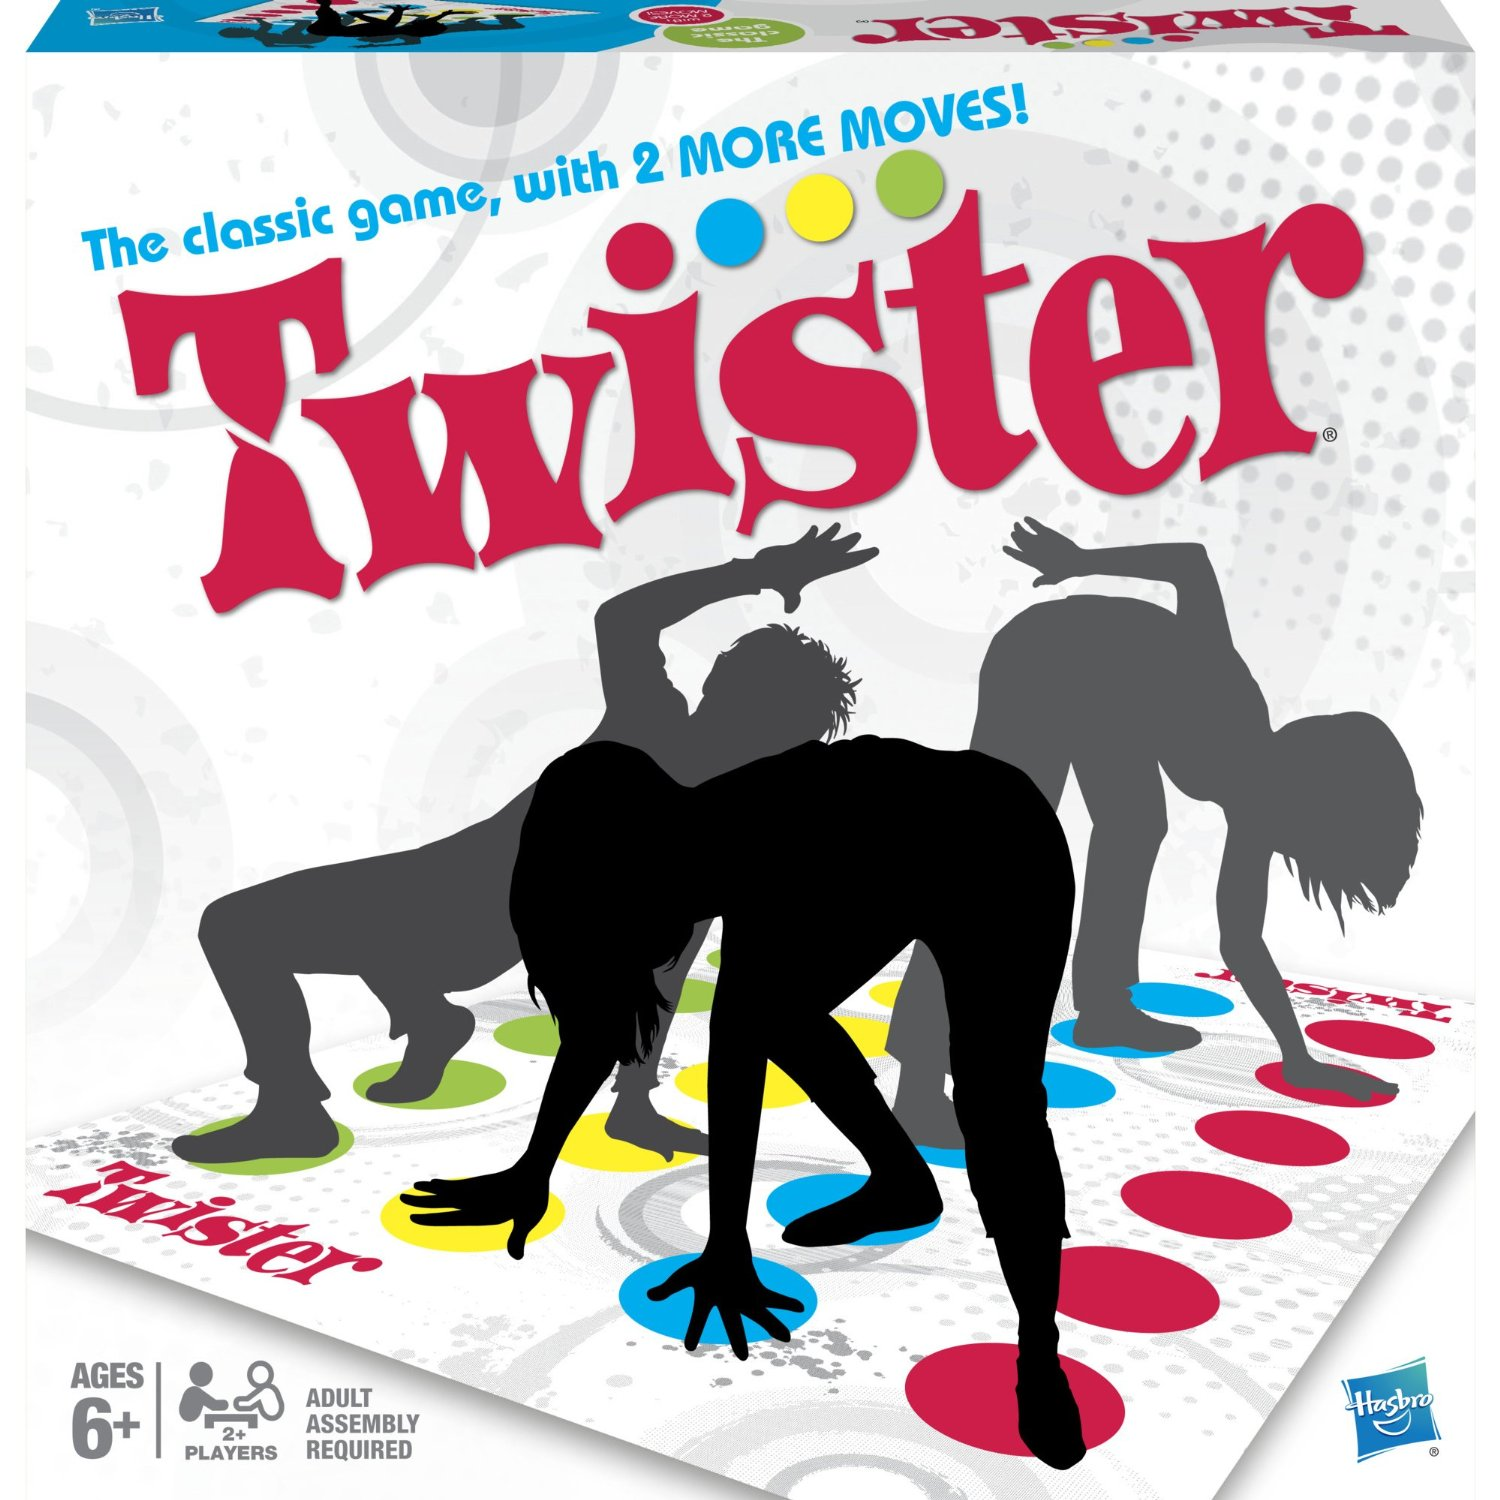 Forum on this topic: 3 Ways to Play Twister, 3-ways-to-play-twister/